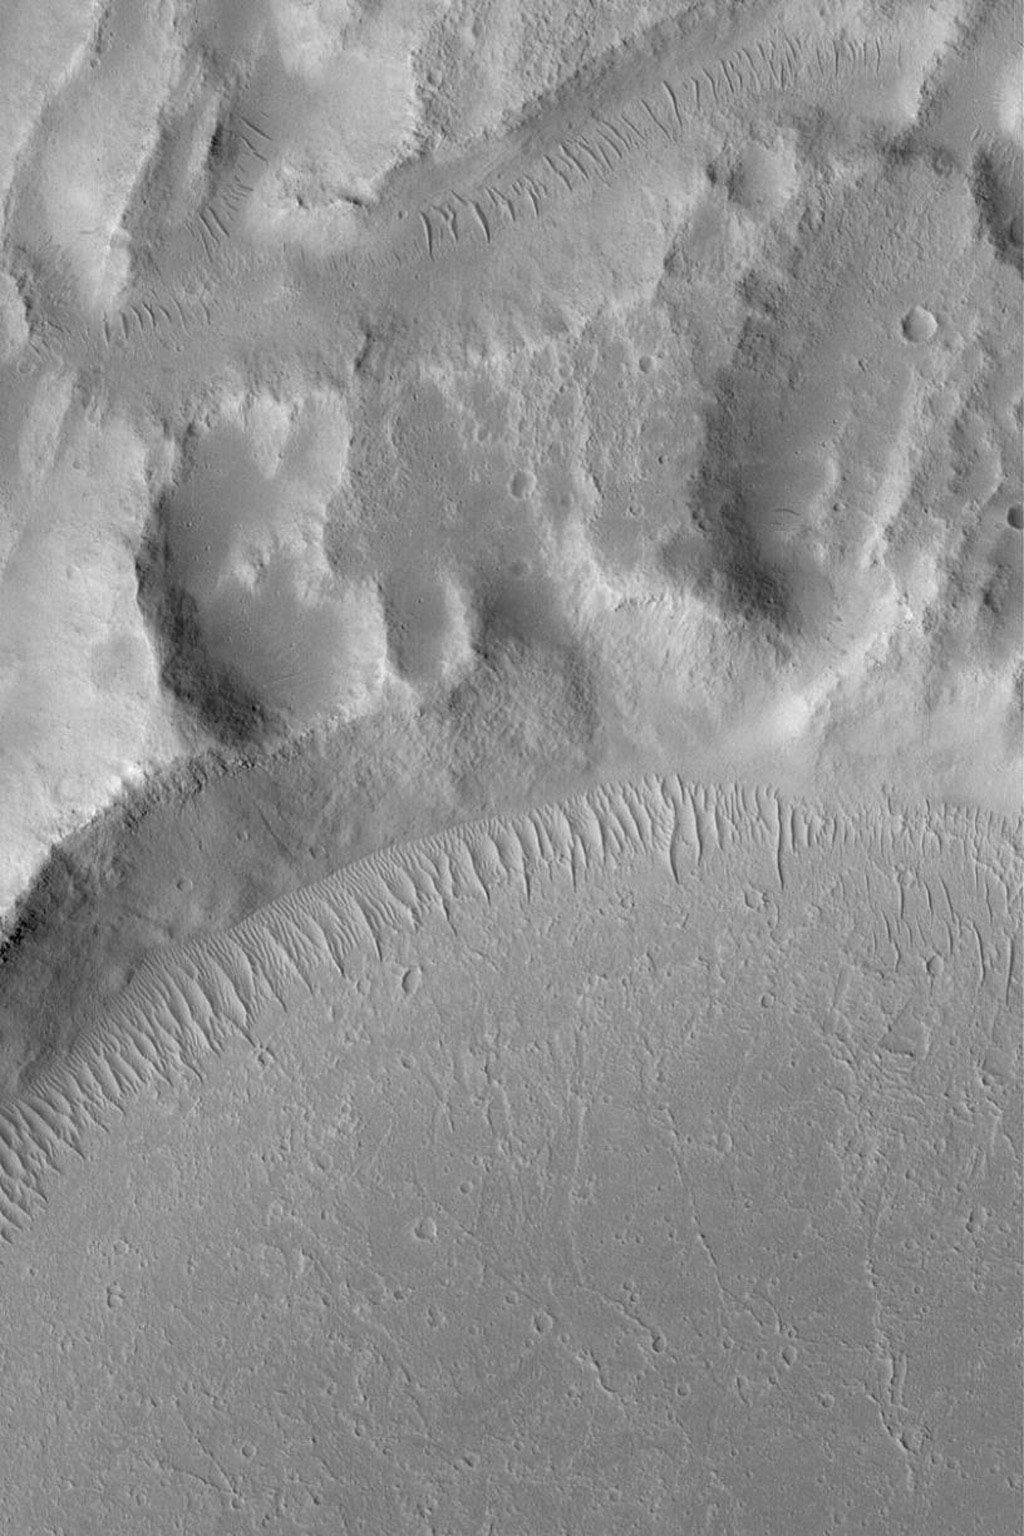 NASA's Mars Global Surveyor shows flow patterns formed by mud or lava from some of the youngest flow events that occurred in the terrain in the Kasei Valles region of Mars. Large, ripple-like, windblown bedforms are evident.